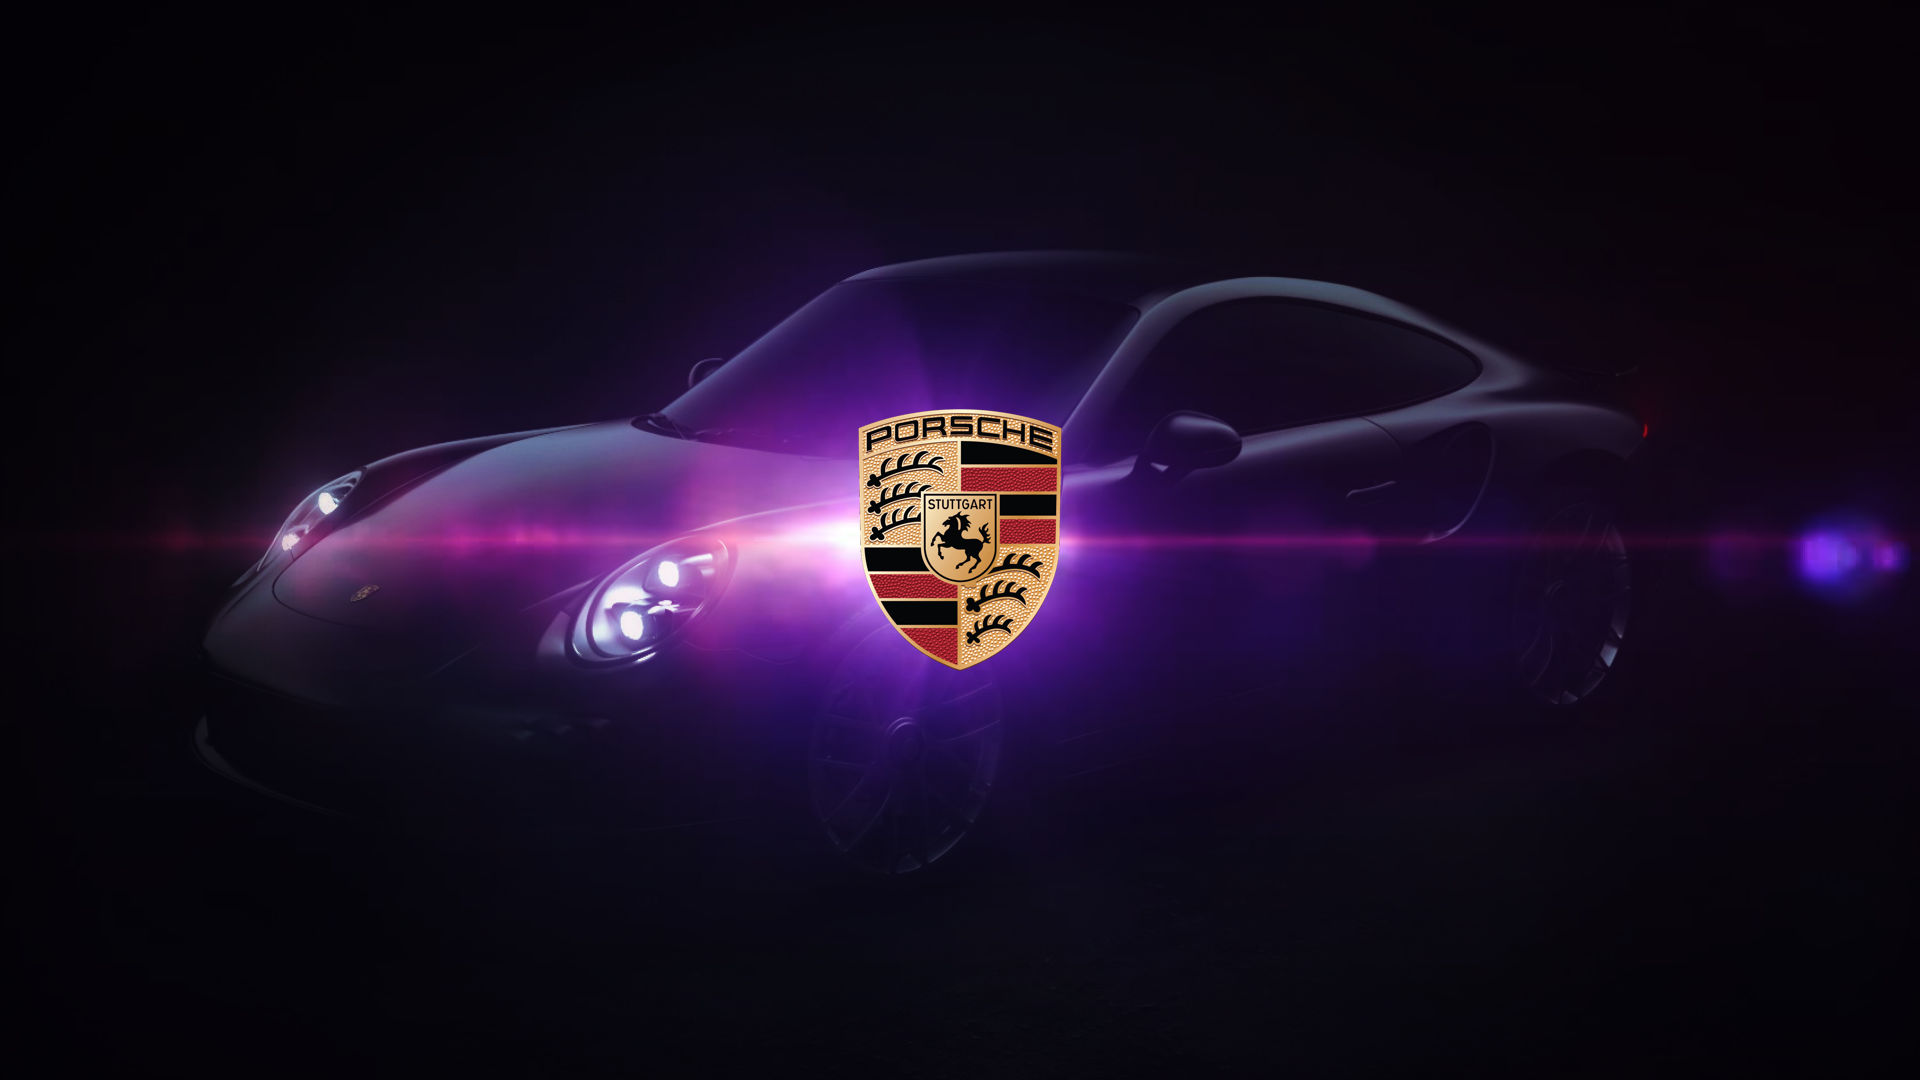 Porsche Logo Black Car Background